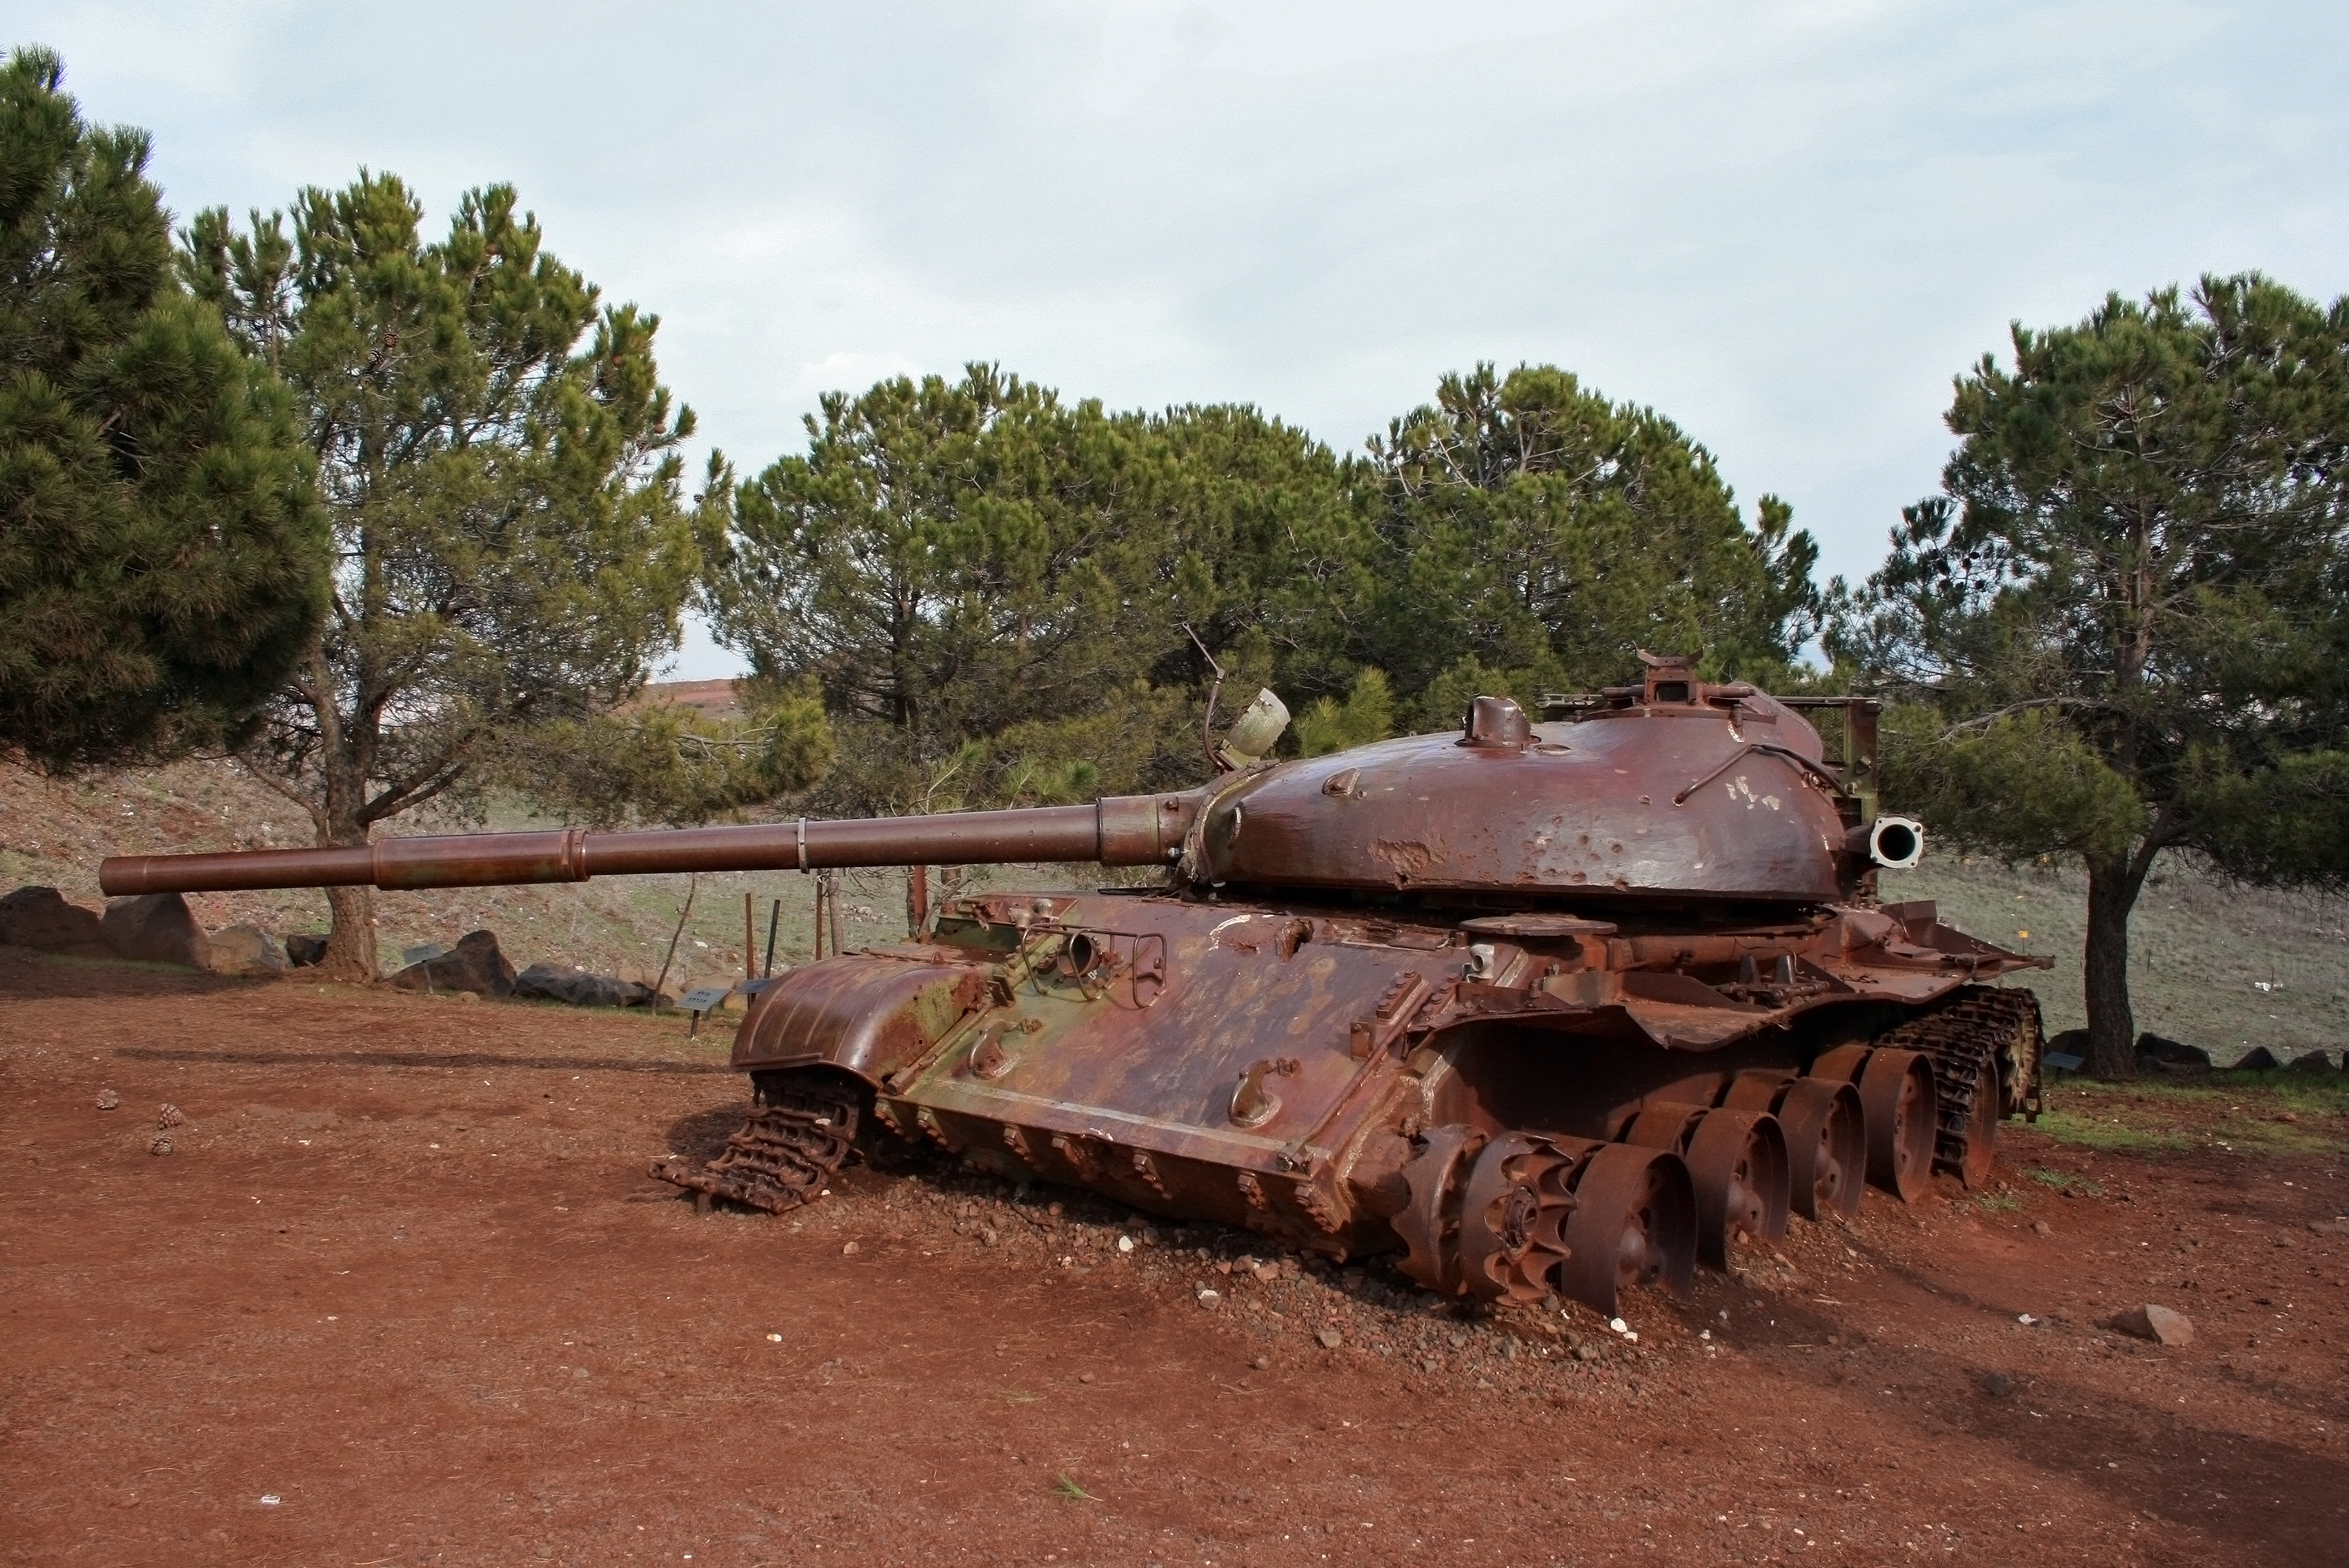 A Syrian T-62 stands as part of a memorial commemorating the battle of the 'Valley of Tears', Northern Golan Heights, Israel.